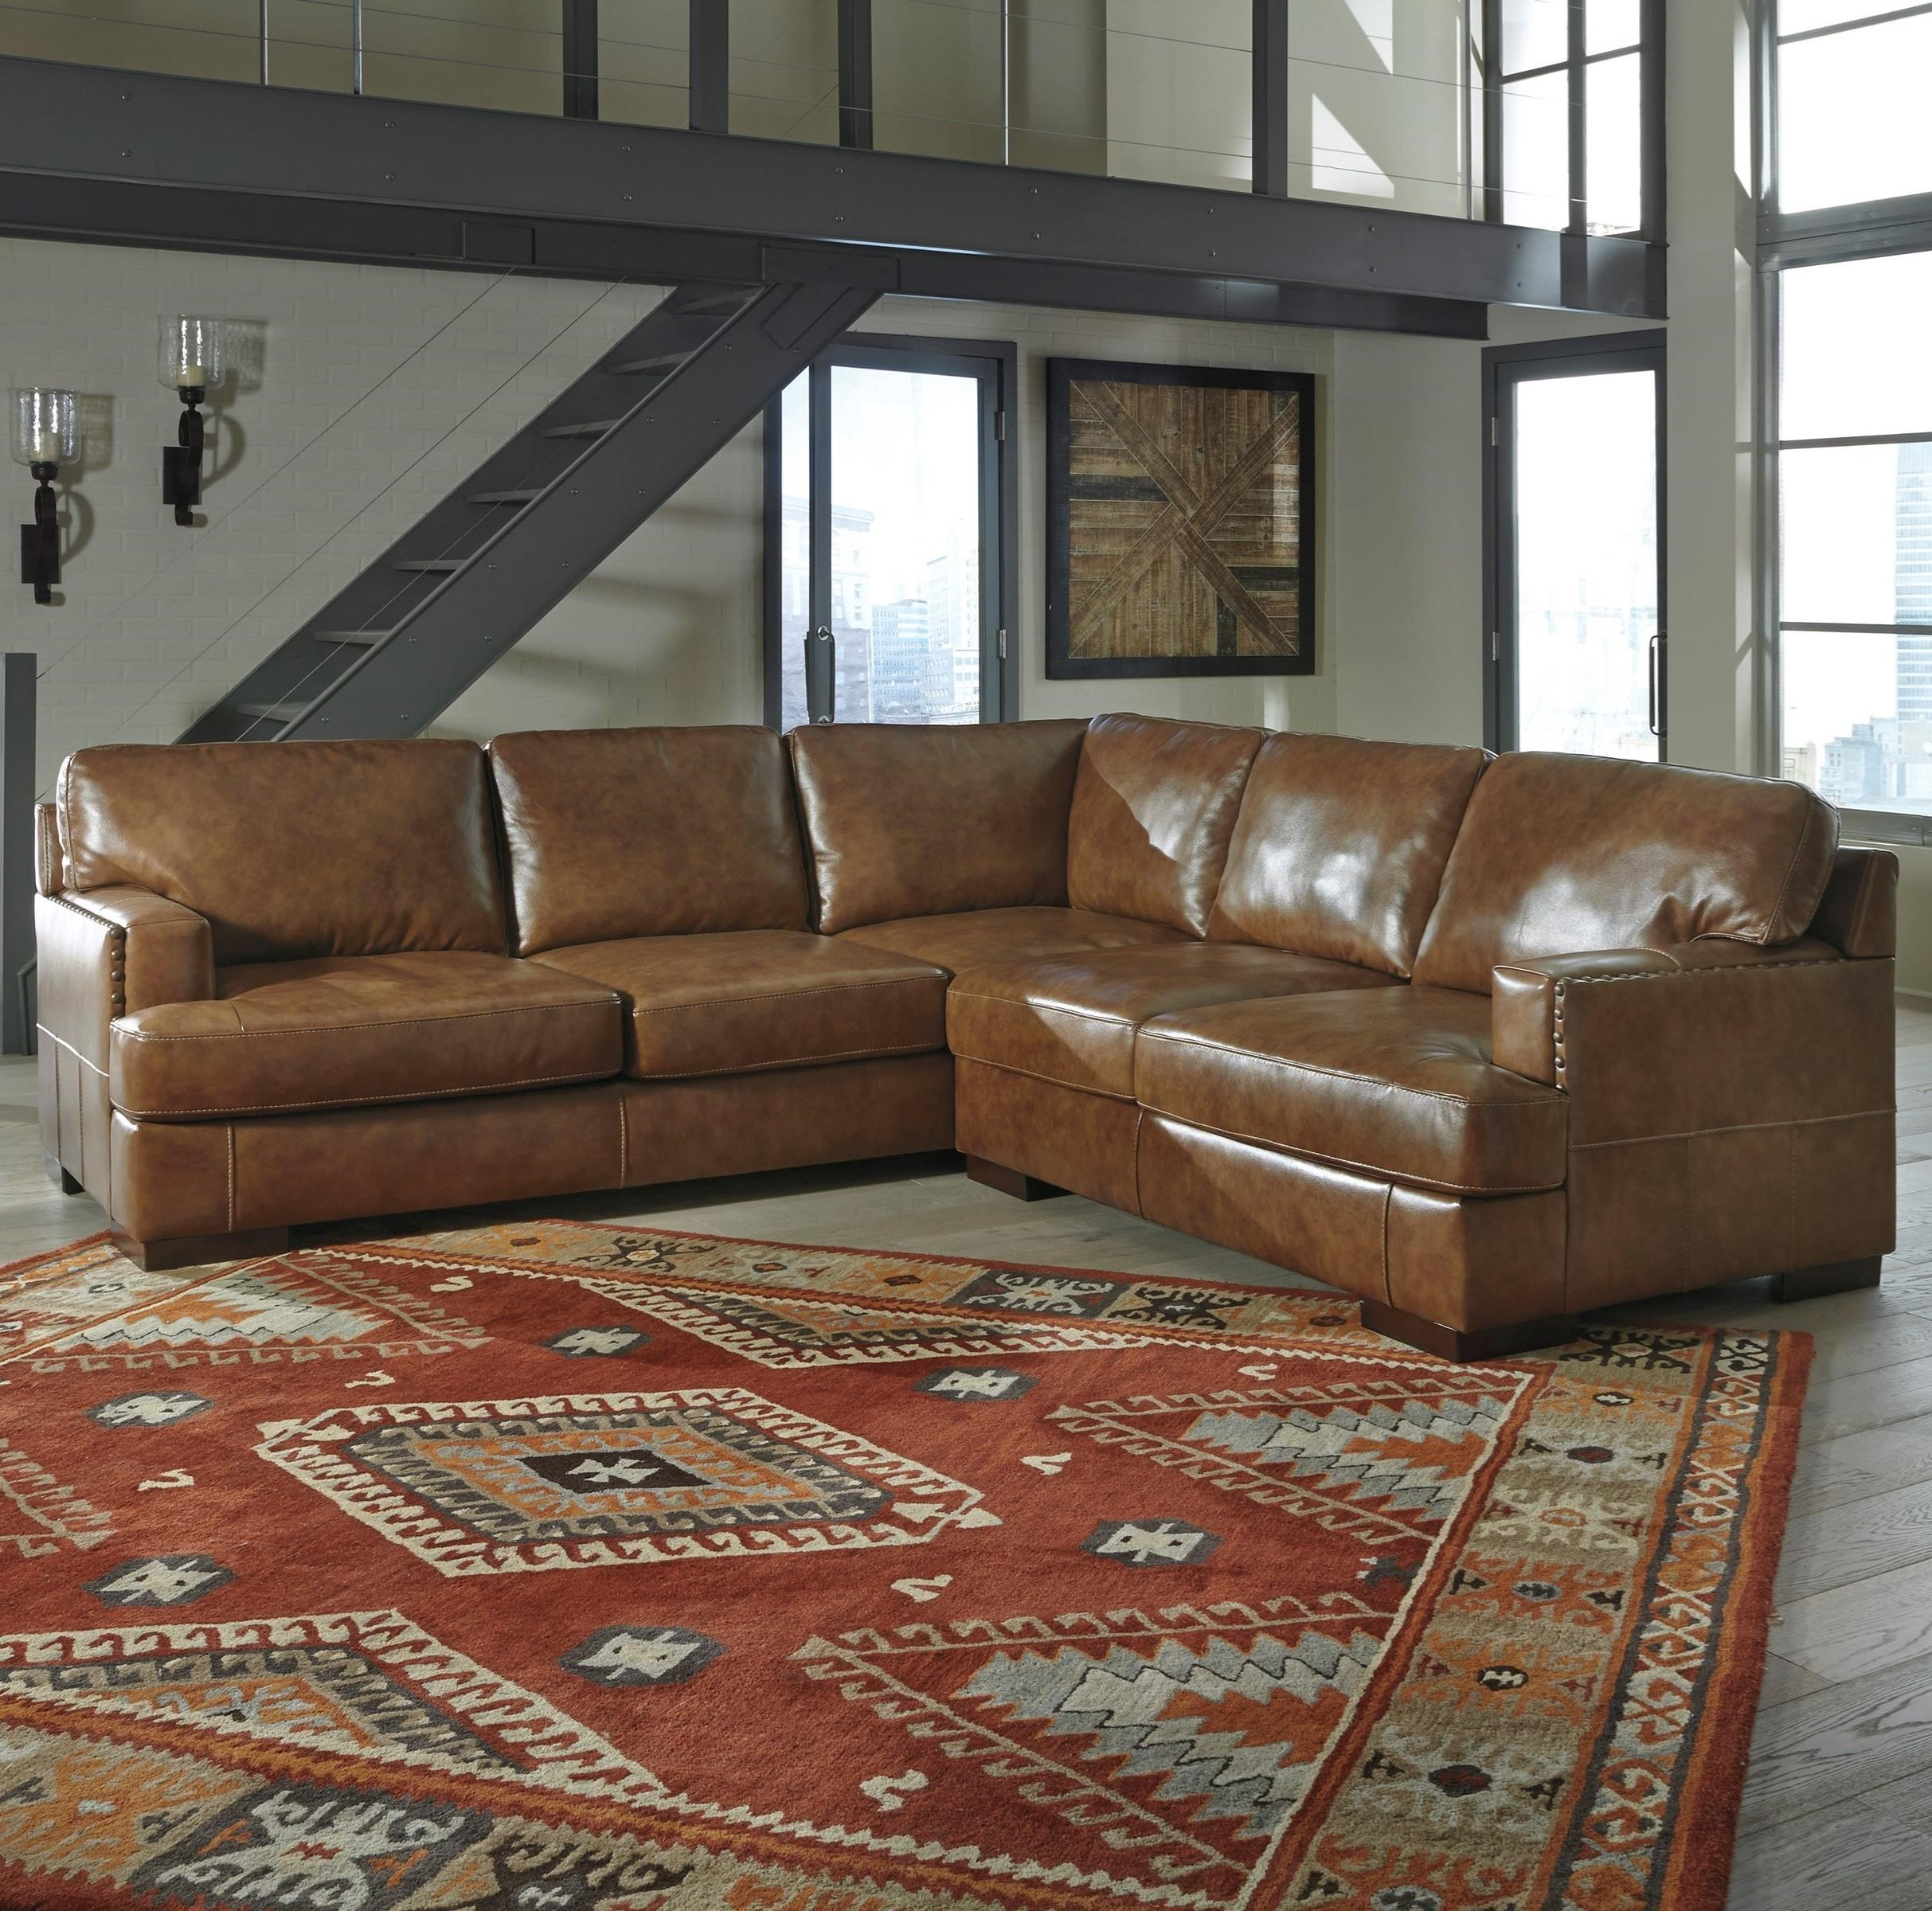 Signature Design by Ashley Vincenzo 2-Piece Sectional - Item Number: 3040166+56